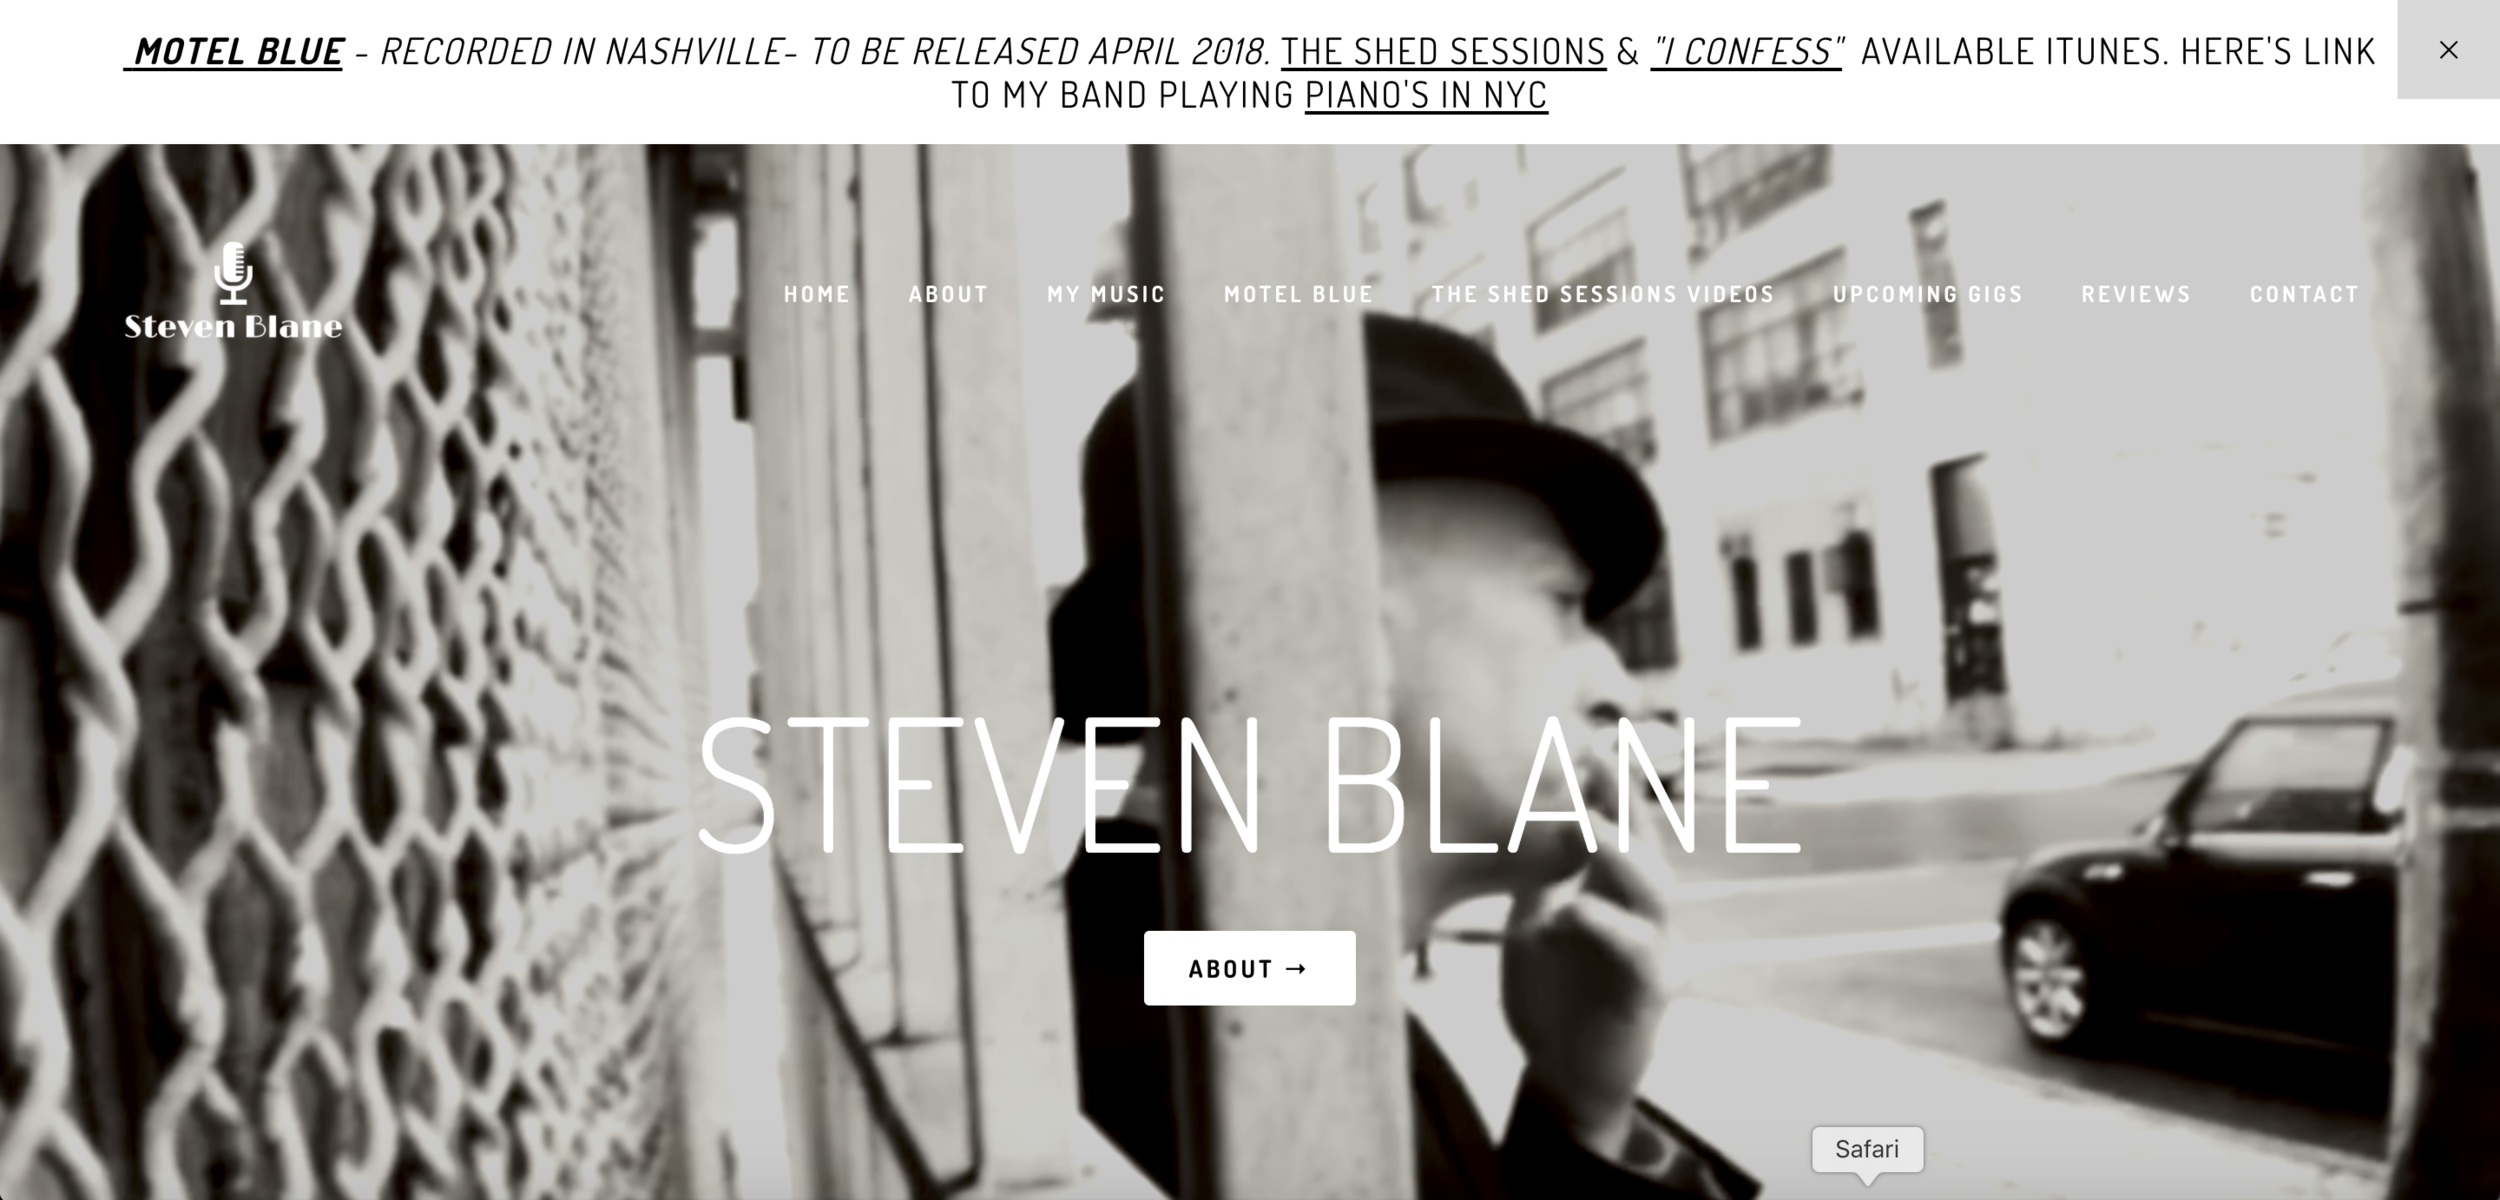 Steven Blane - American singer/songwriter. Needed to revamp his current site in order to grow his audience prior to his new album release.